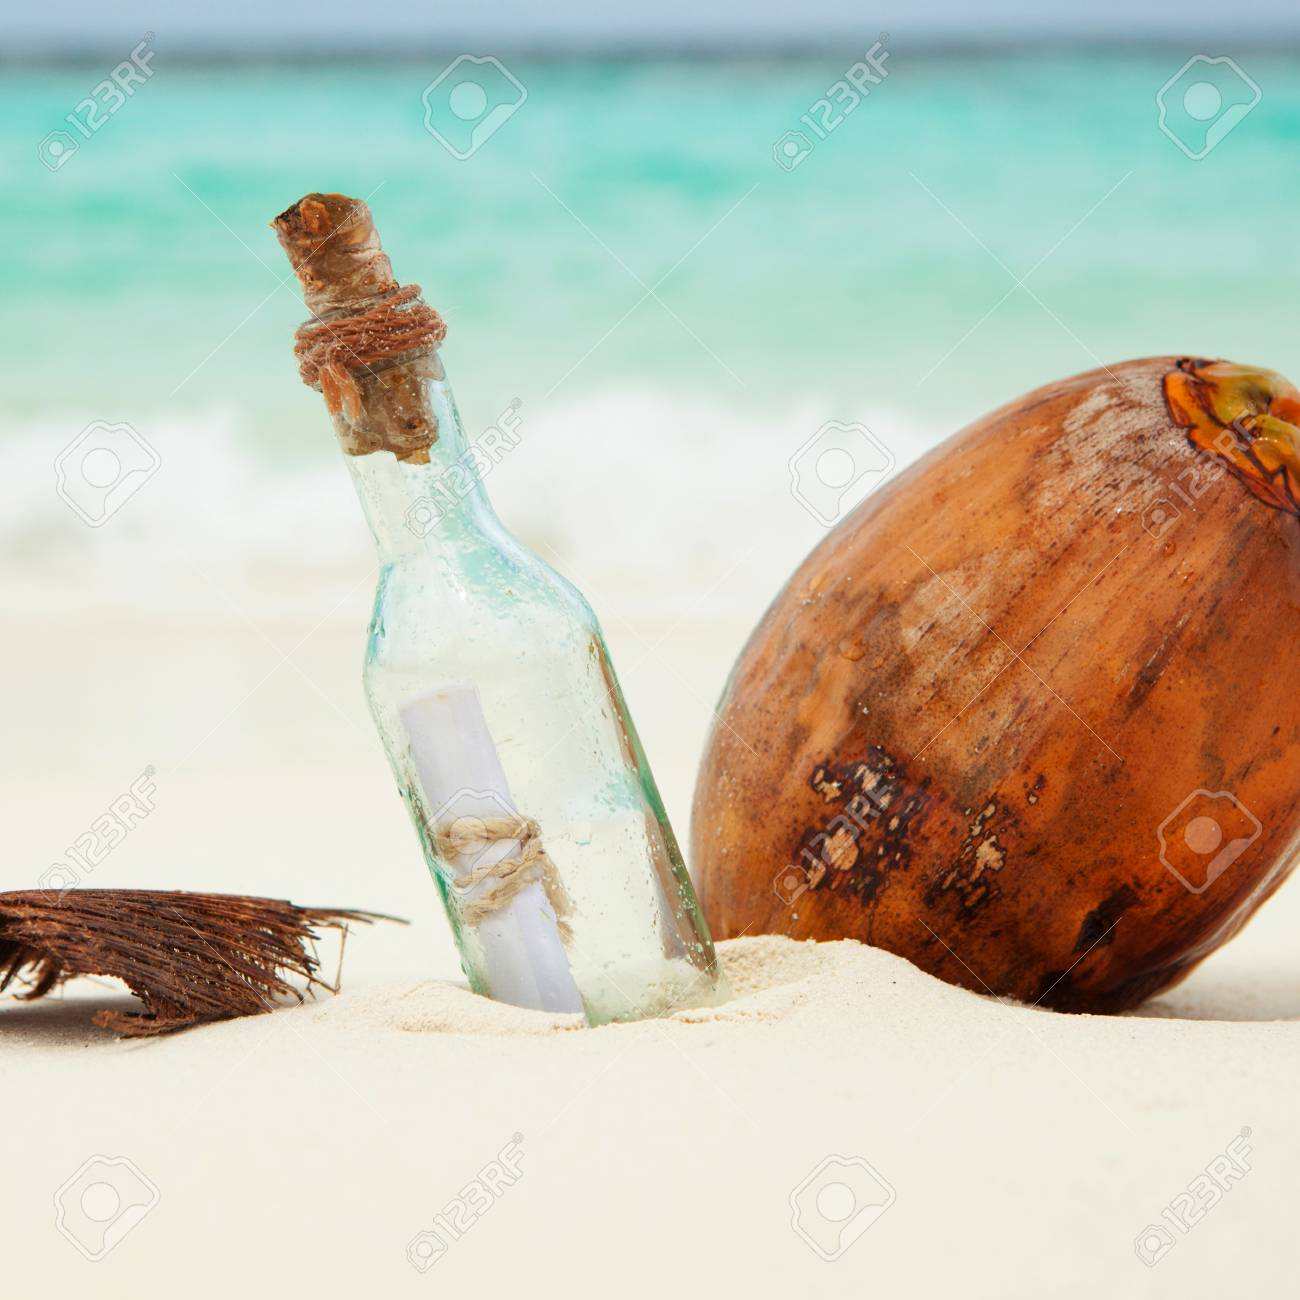 a letter in a bottle and a coconut on the beach stock photo 41190842